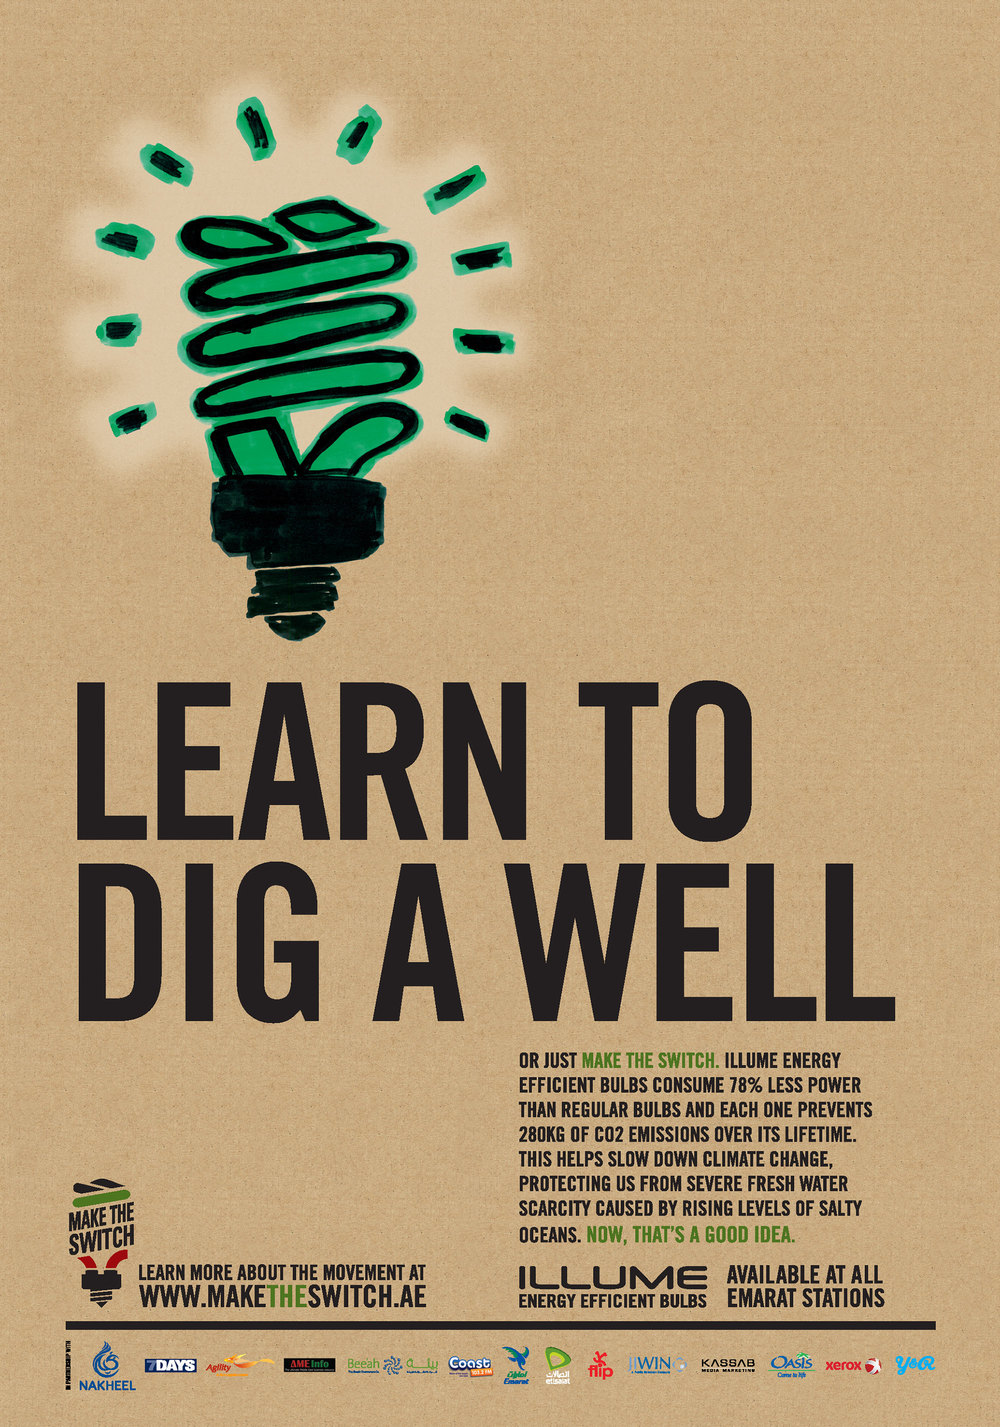 Learn to dig a well.